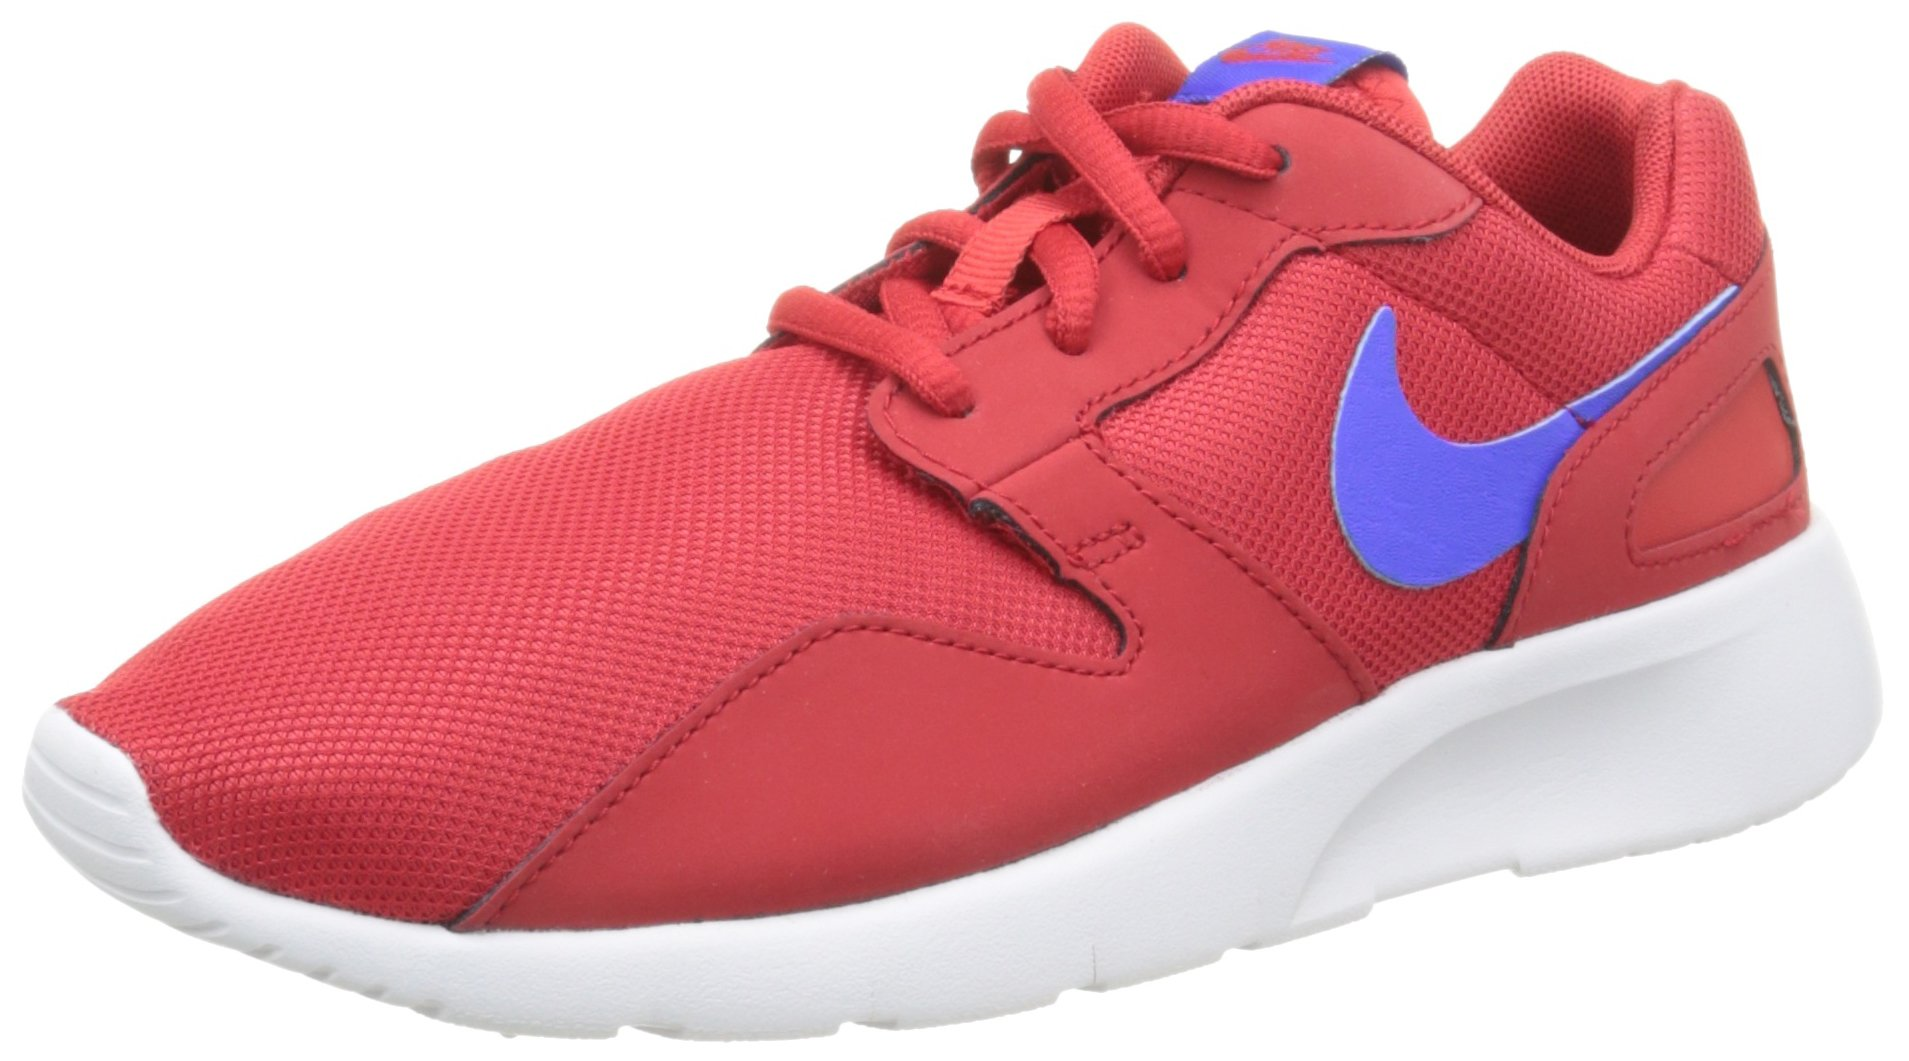 Nike Kaishi (Gs) Running Trainers 705489 Sneakers Shoes (Uk 3.5 Us 4Y Eu 36, University Red Racer Blue 604)